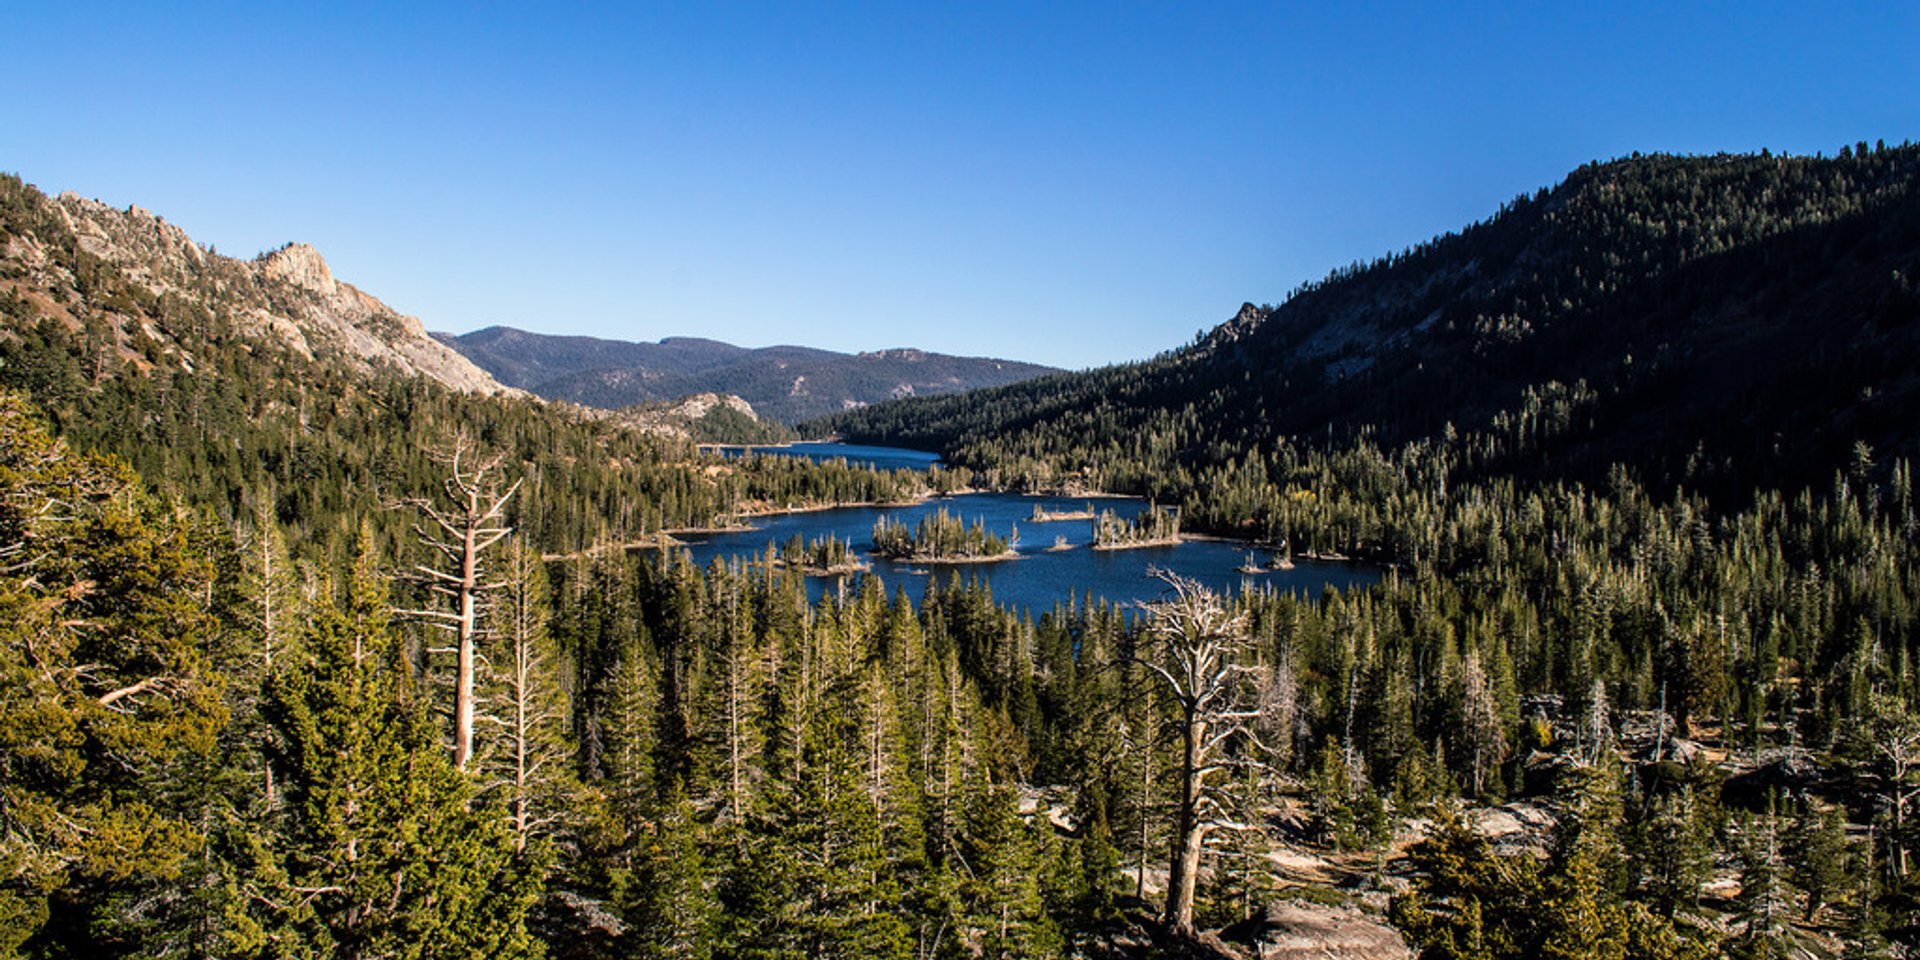 Desolation Wilderness in California 2020 - Best Time